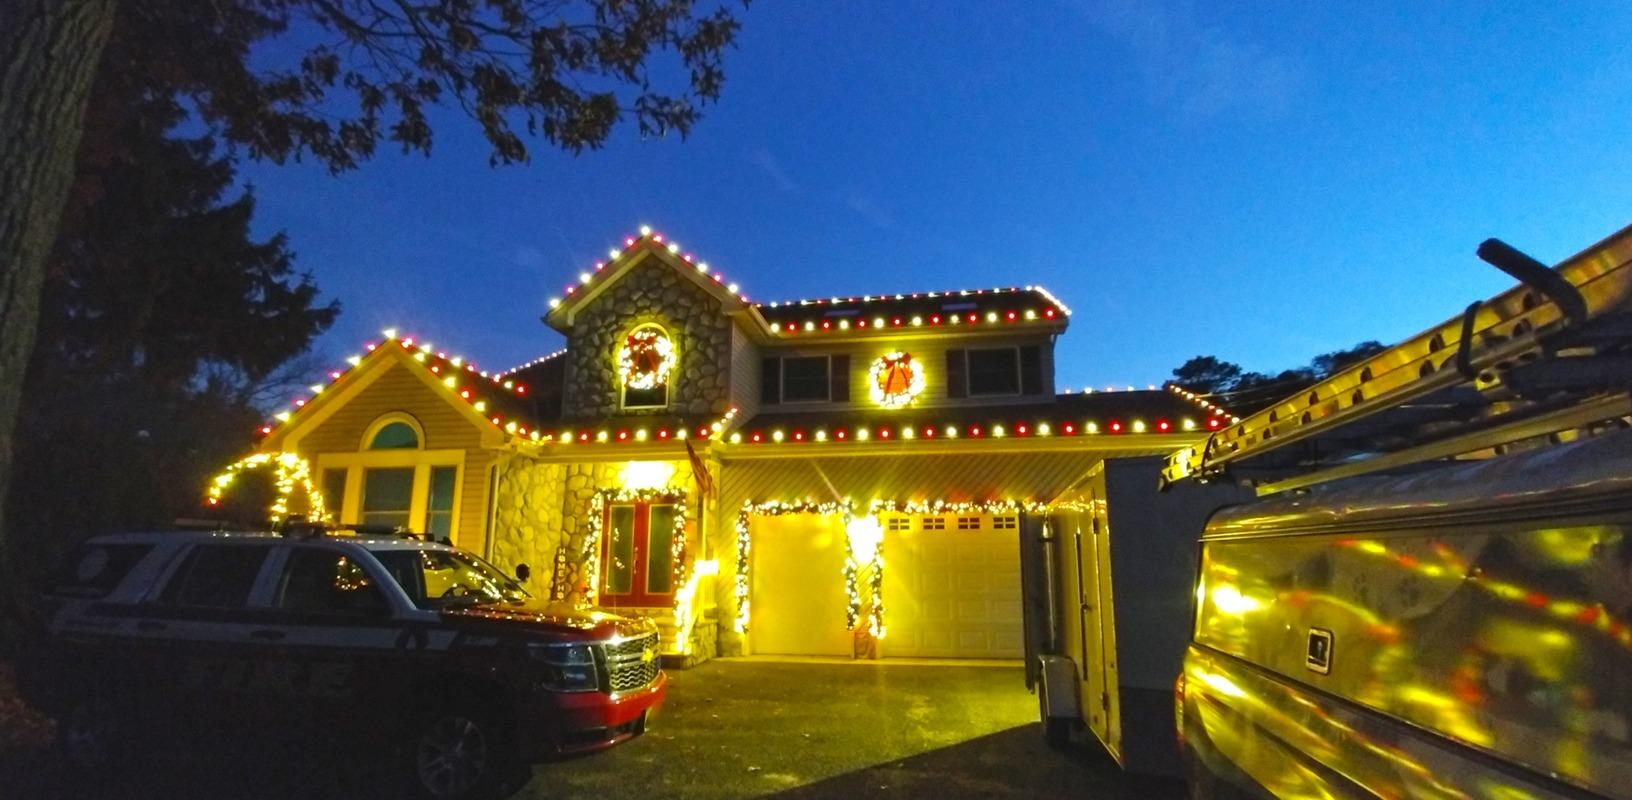 Professional Holiday Lighting in Farmingdale, NJ - After Photo